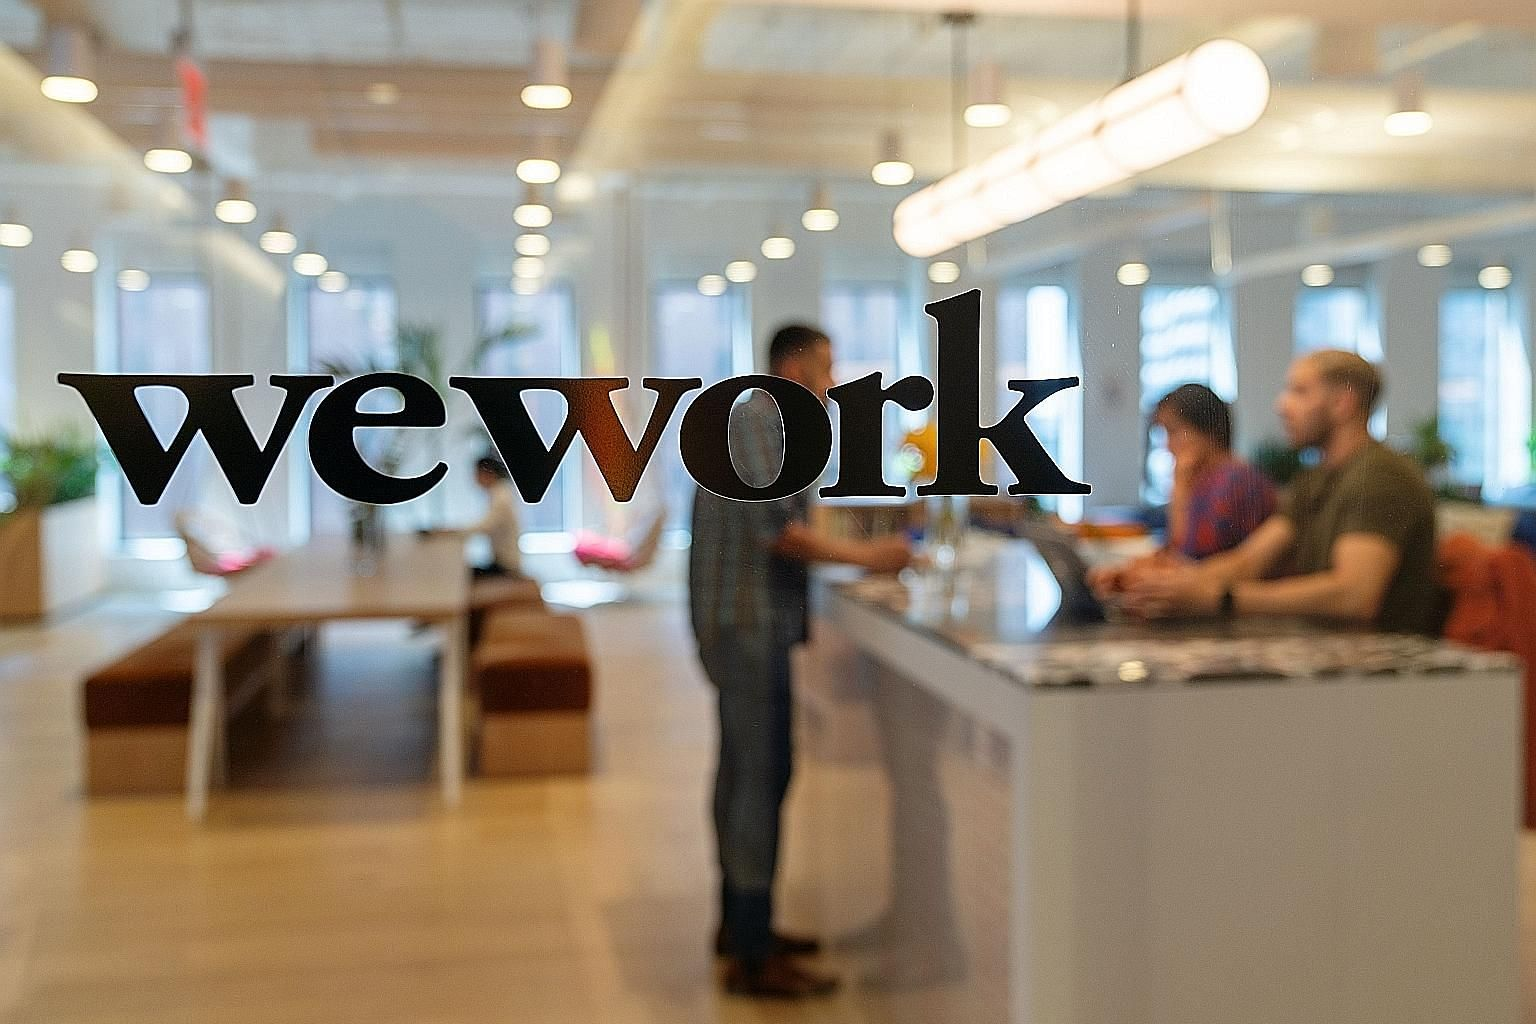 WeWork's parent, The We Company, may seek a valuation as low as US$15 billion (S$21 billion) to US$18 billion in an initial public offering, down from the US$47 billion value it commanded in the last private fund-raising round, a source said. PHOTO: